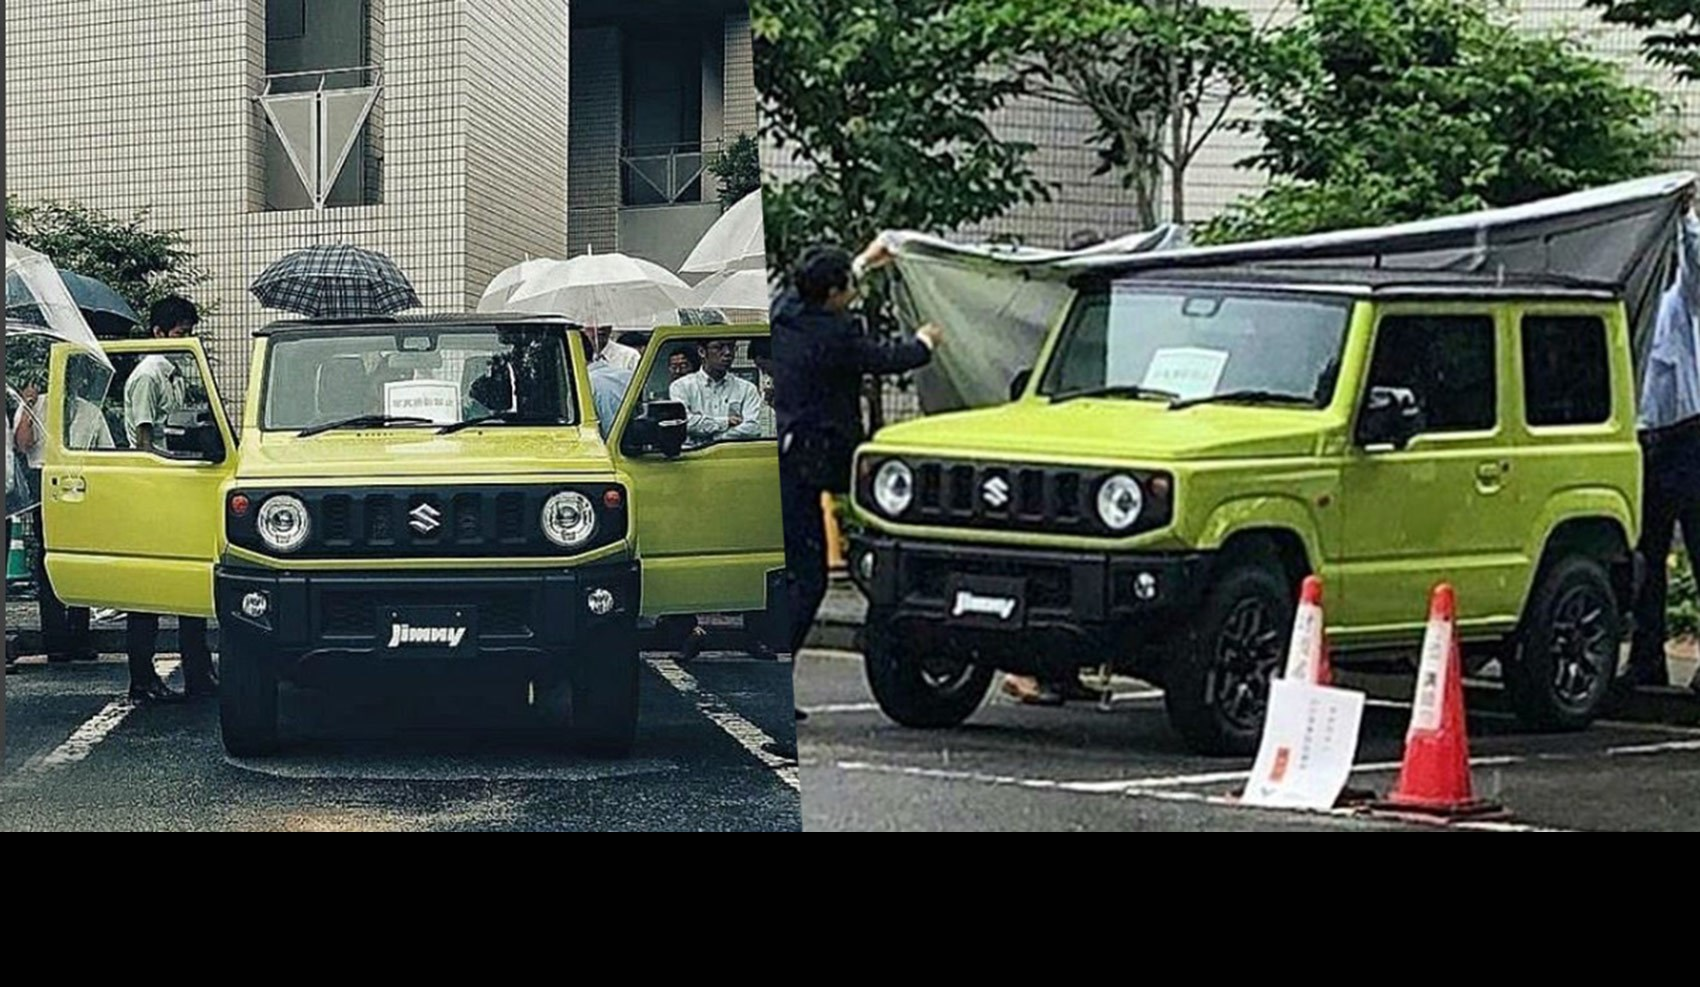 2019 Suzuki Jimny: News, Design, Release >> Suzuki Jimny Suv Cute N Rugged 4x4 Spotted Car Magazine